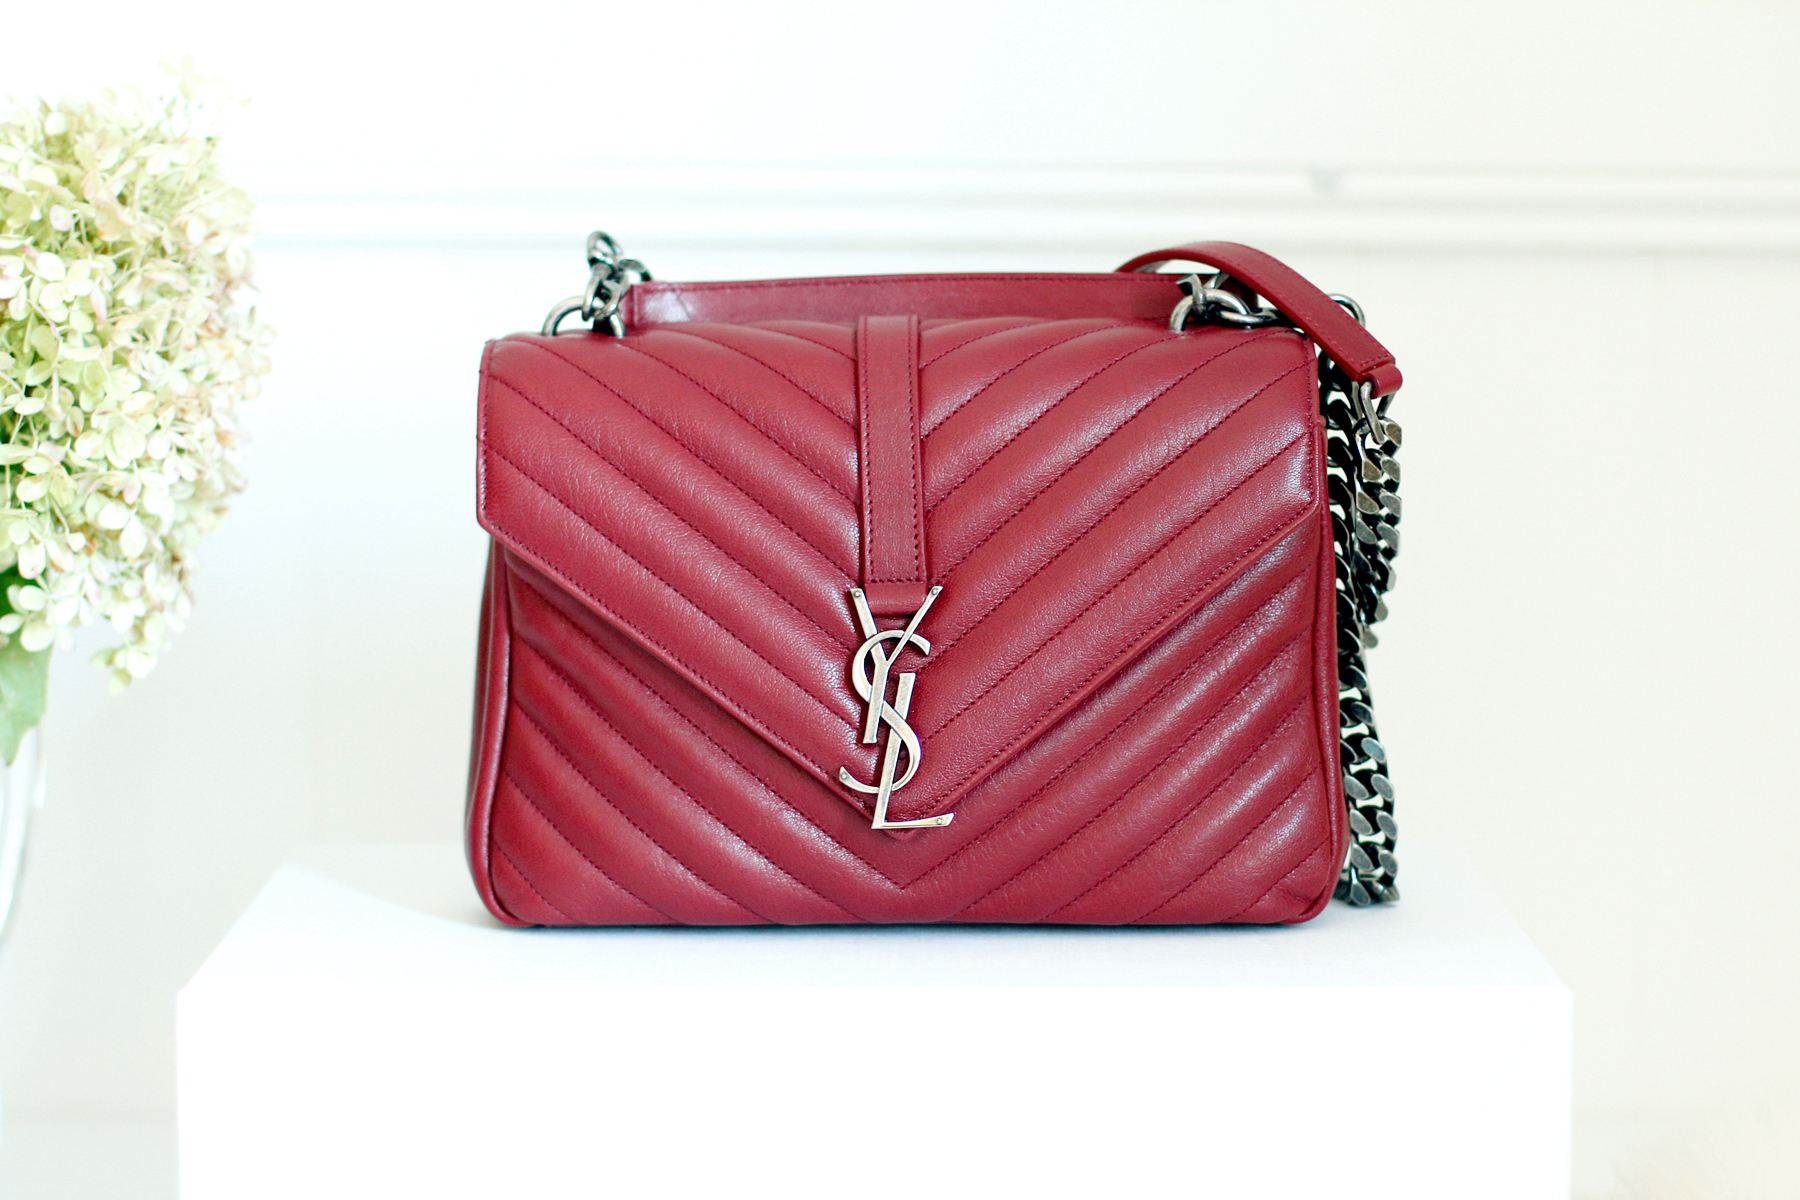 YSL Saint Laurent Paris Classic Monogramme Flap Bag Red Toss Or Take fashionblogger germanblogger cats & dogs ricarda schernus styleblogger accessoires düsseldorf berlin 3